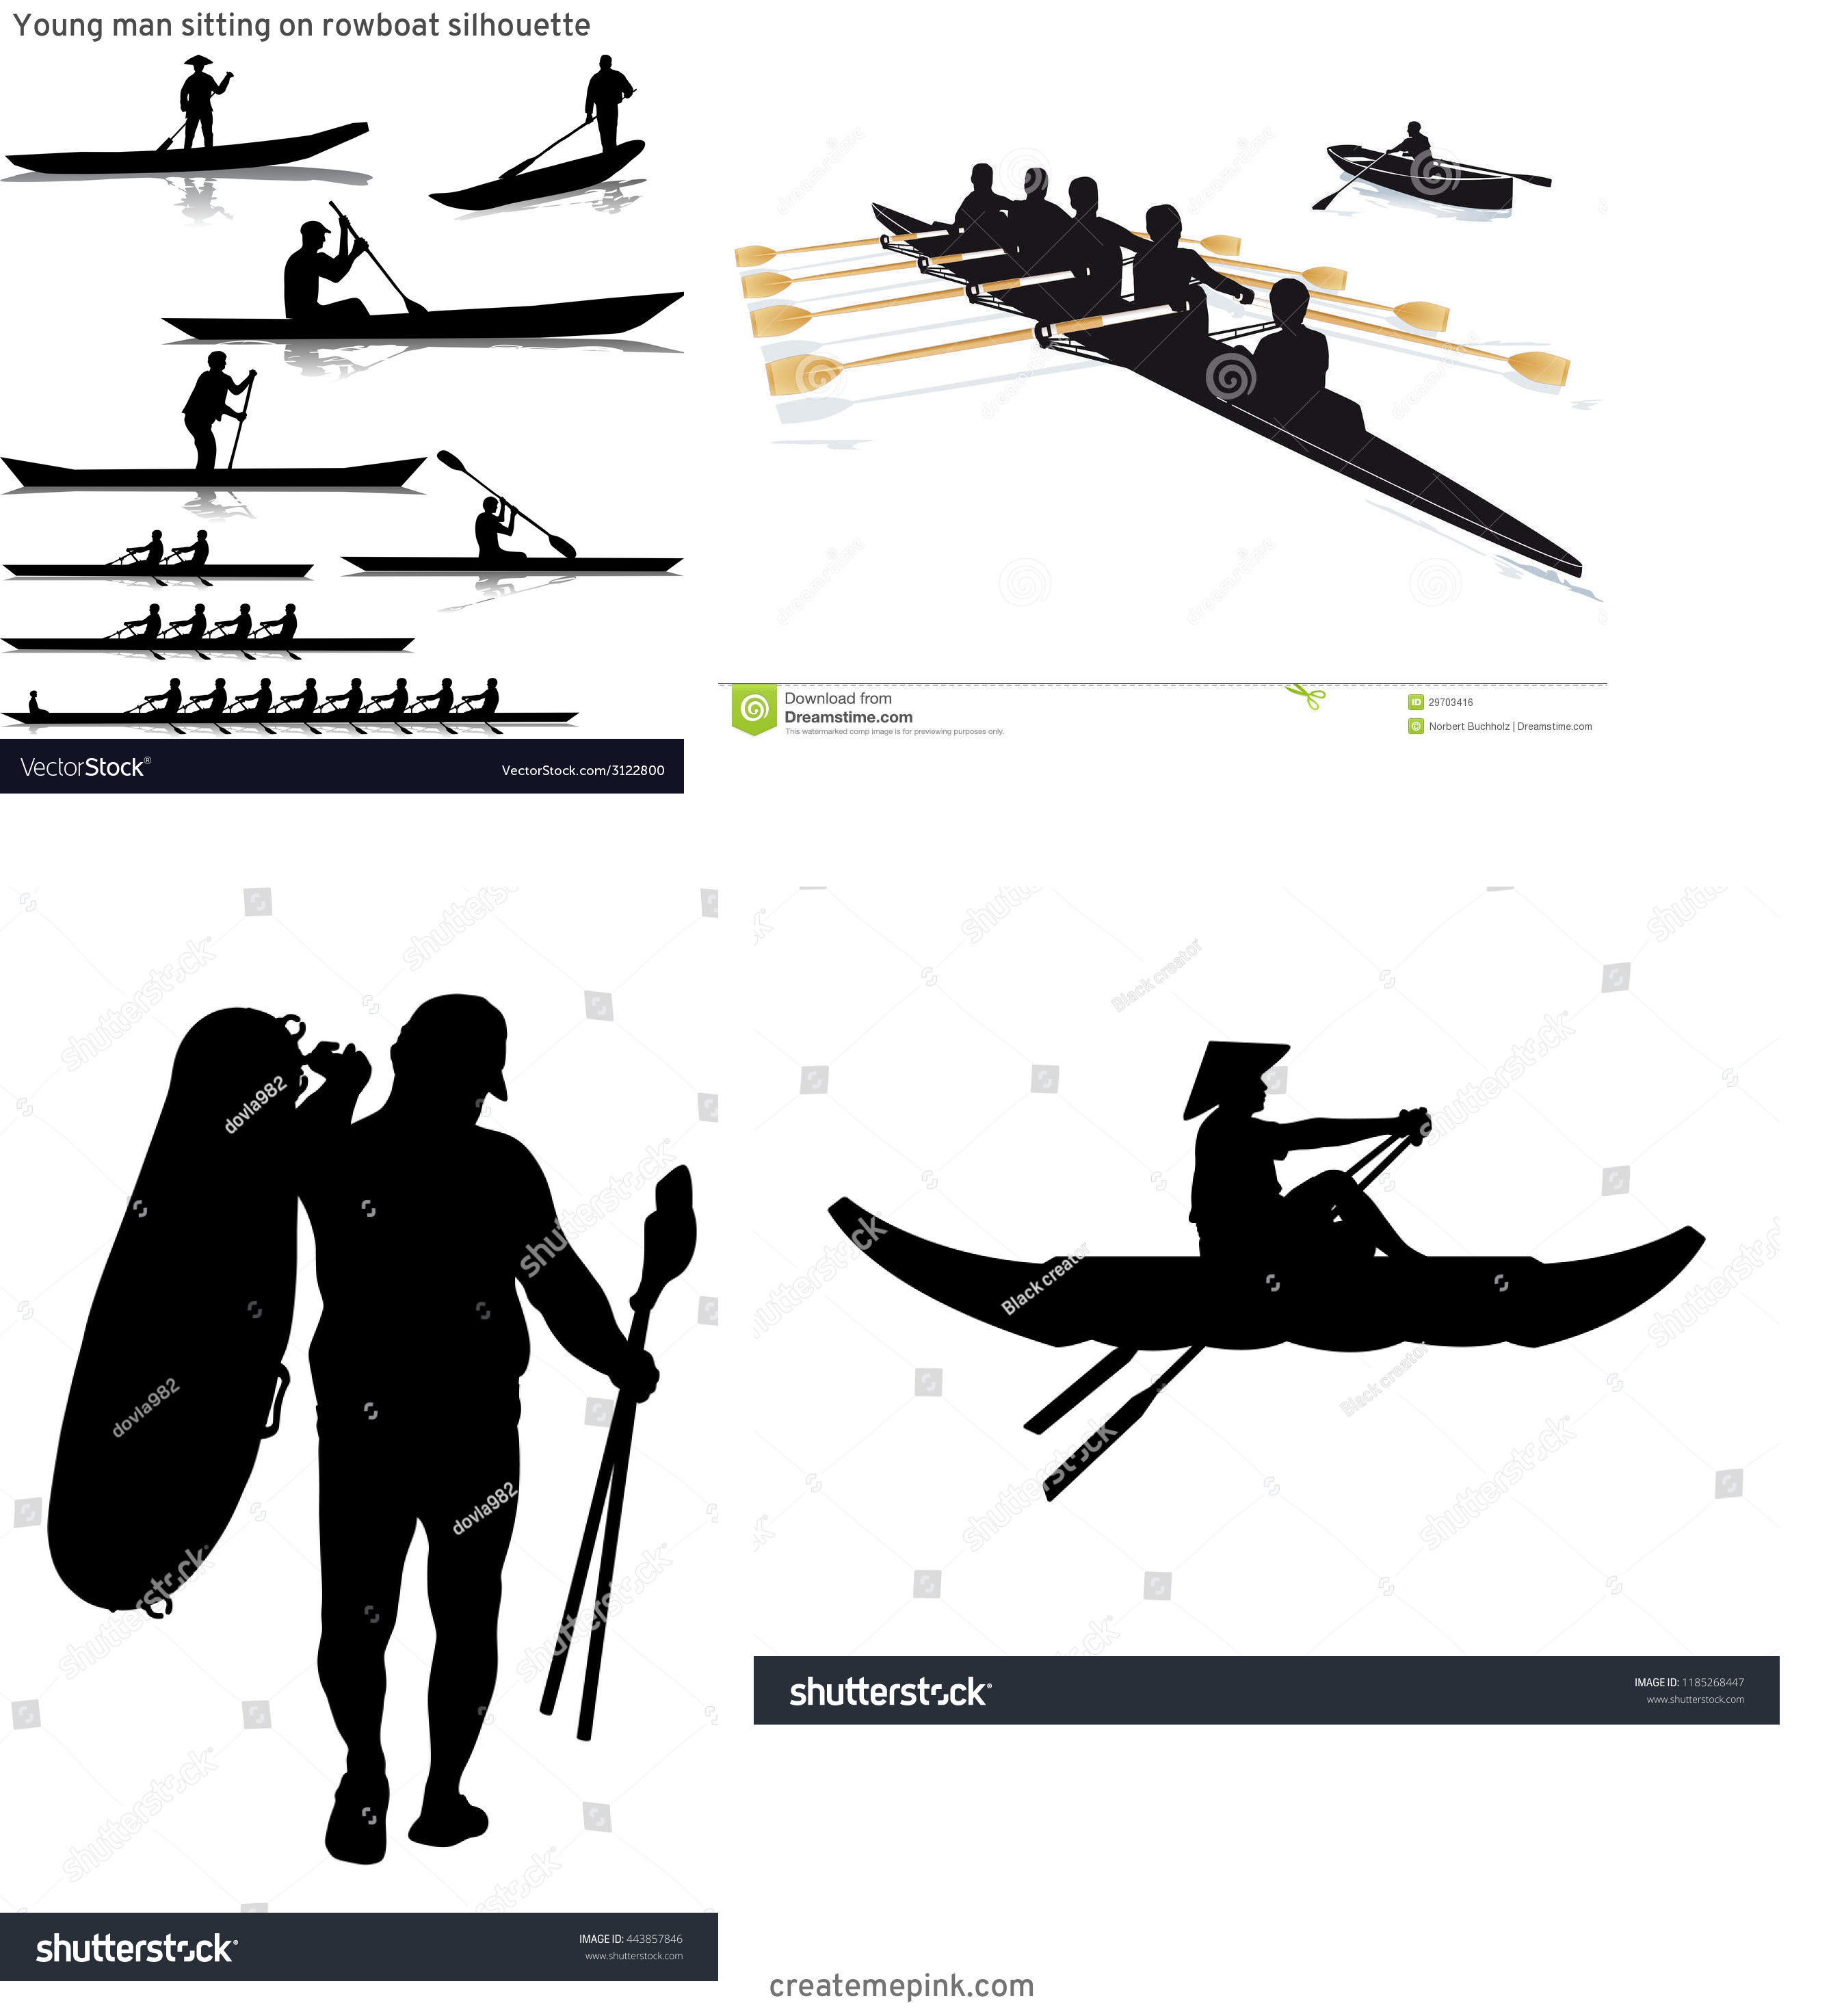 Row Boat Vector Sillohettes: Young Man Sitting On Rowboat Silhouette